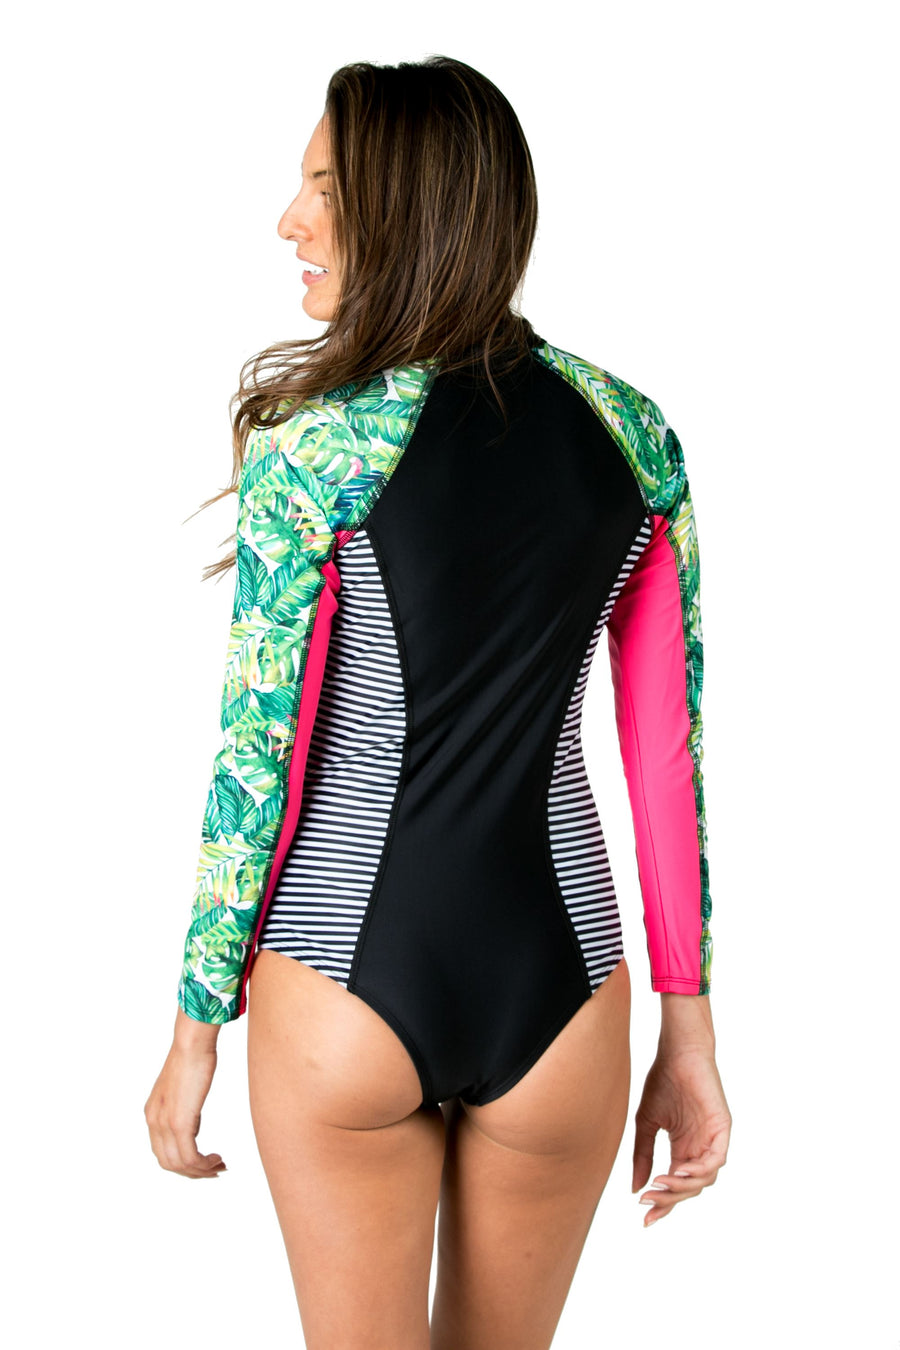 The Drifter Long Sleeve One Piece Surf Suit (In The Jungle) Swim and Surf One Piece Suits Mona